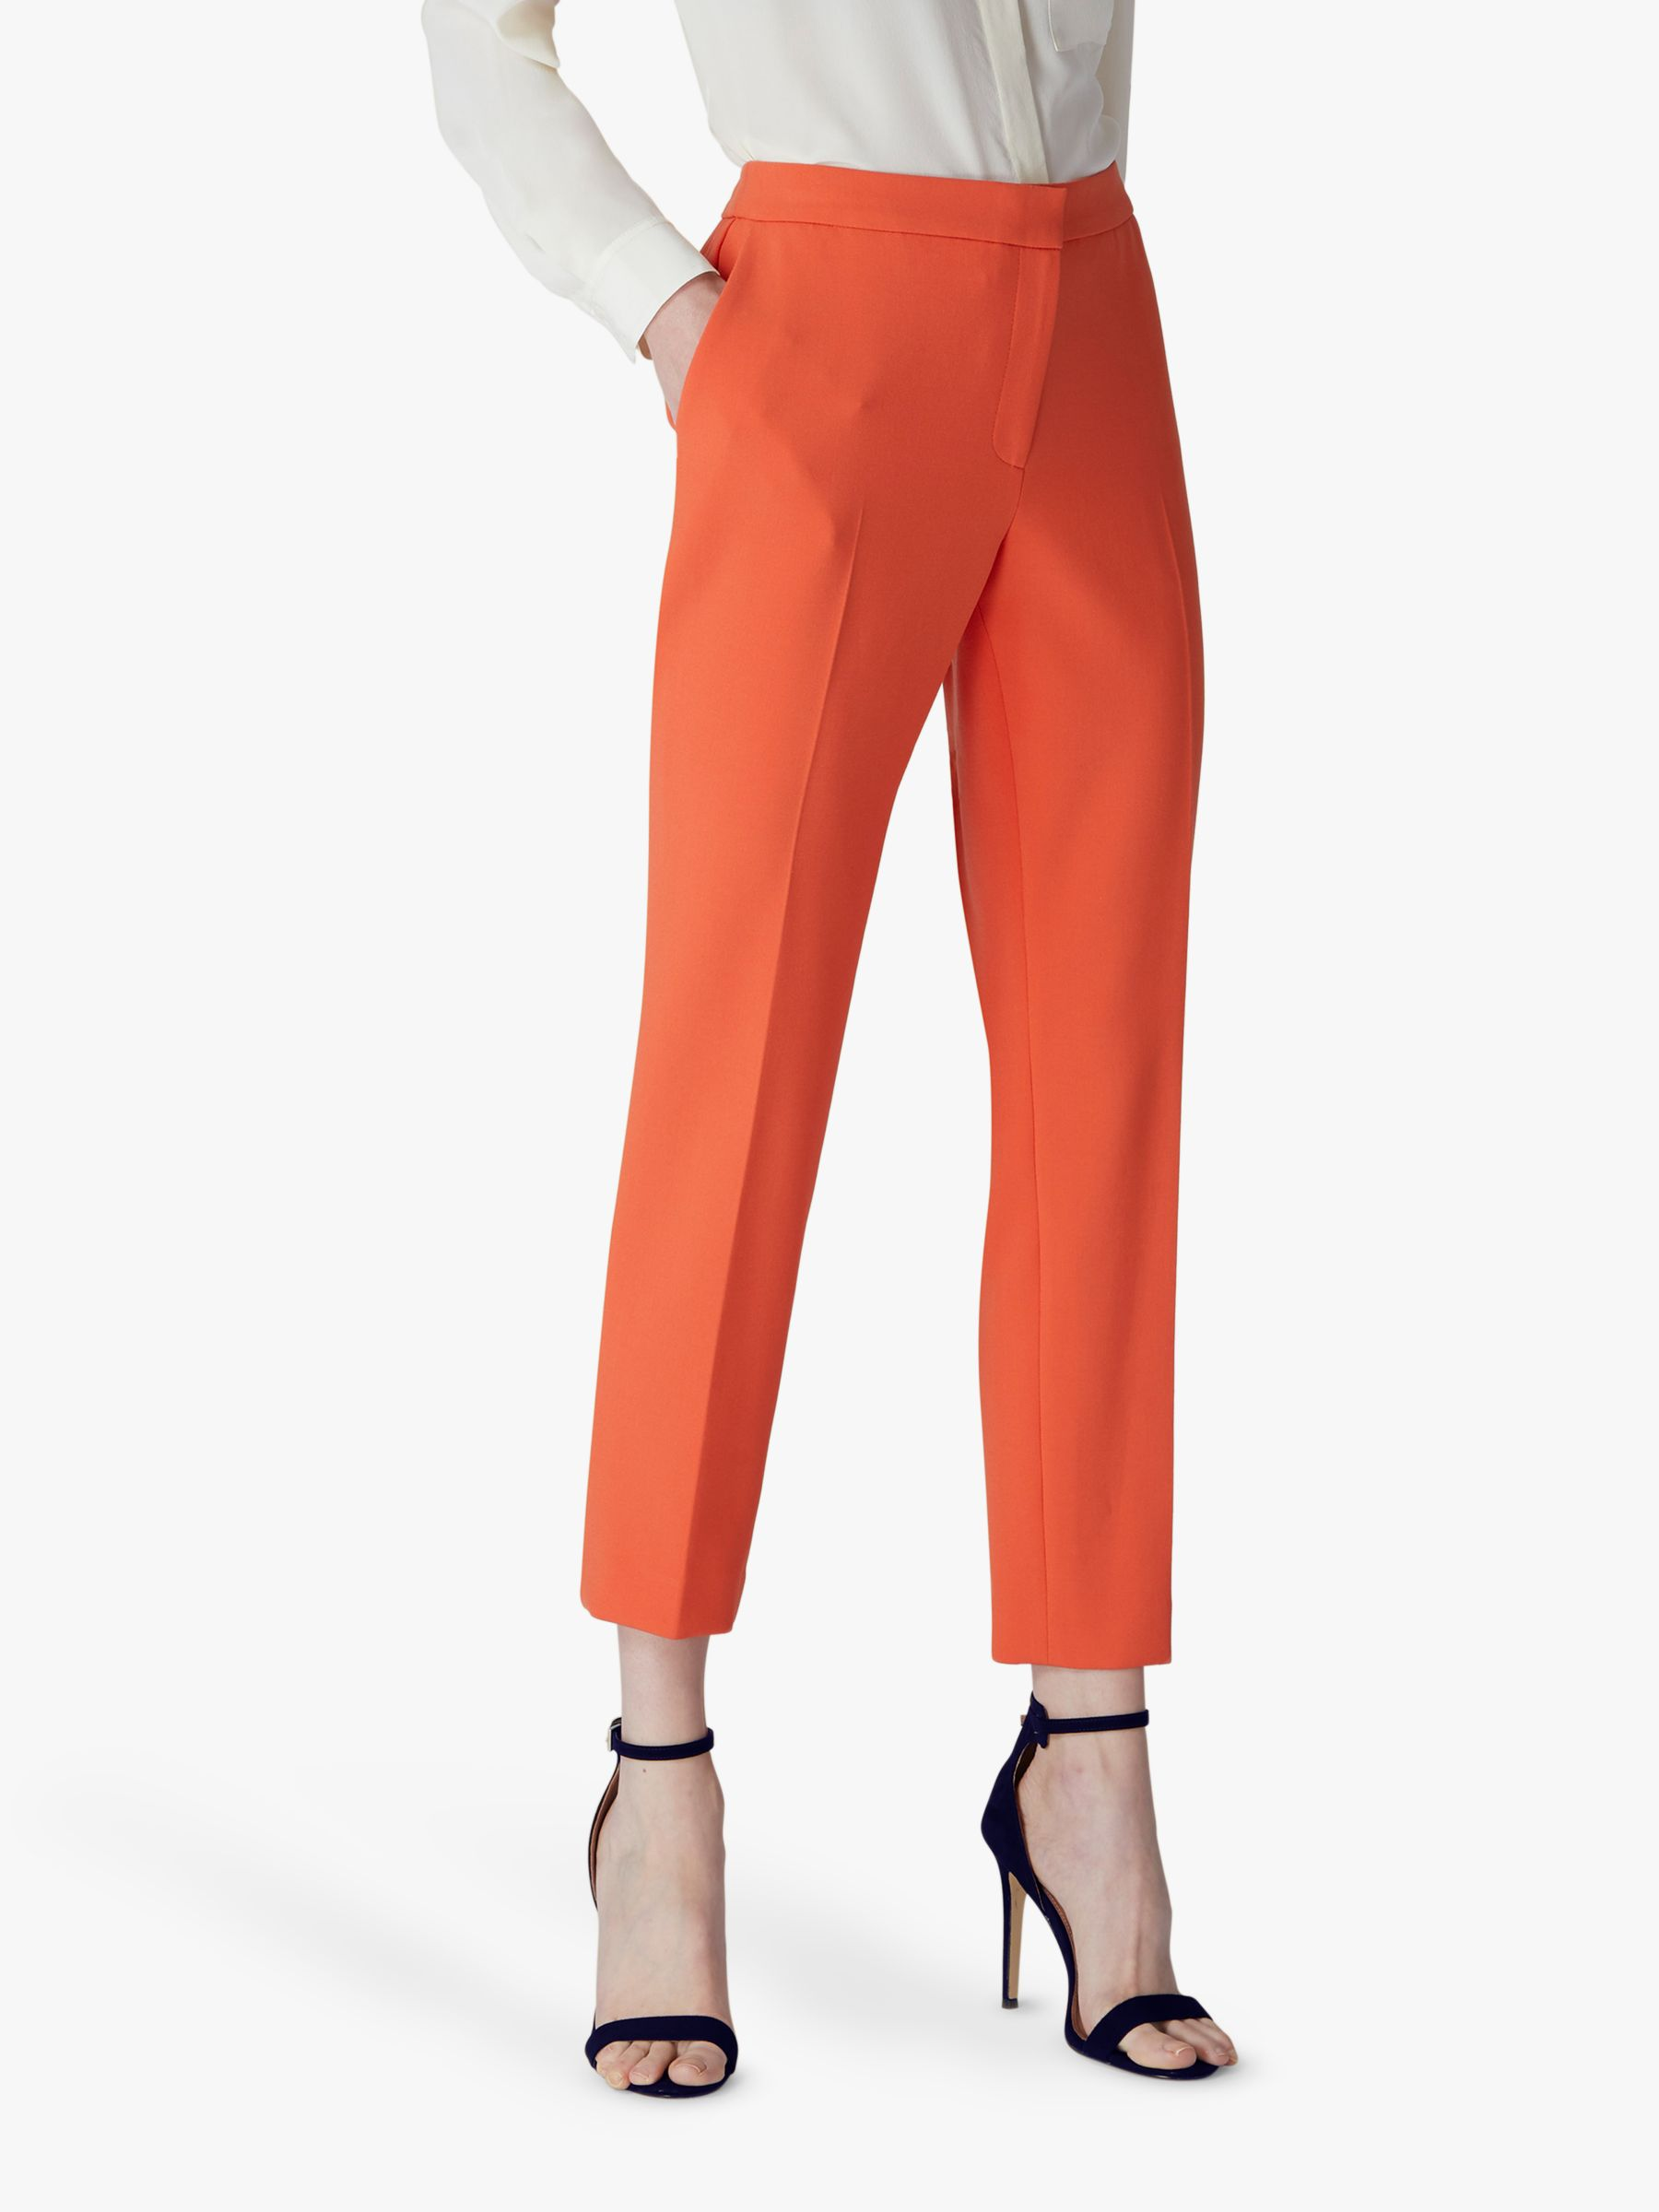 Jaeger Jaeger Colette Tailored Ankle Trousers, Orange